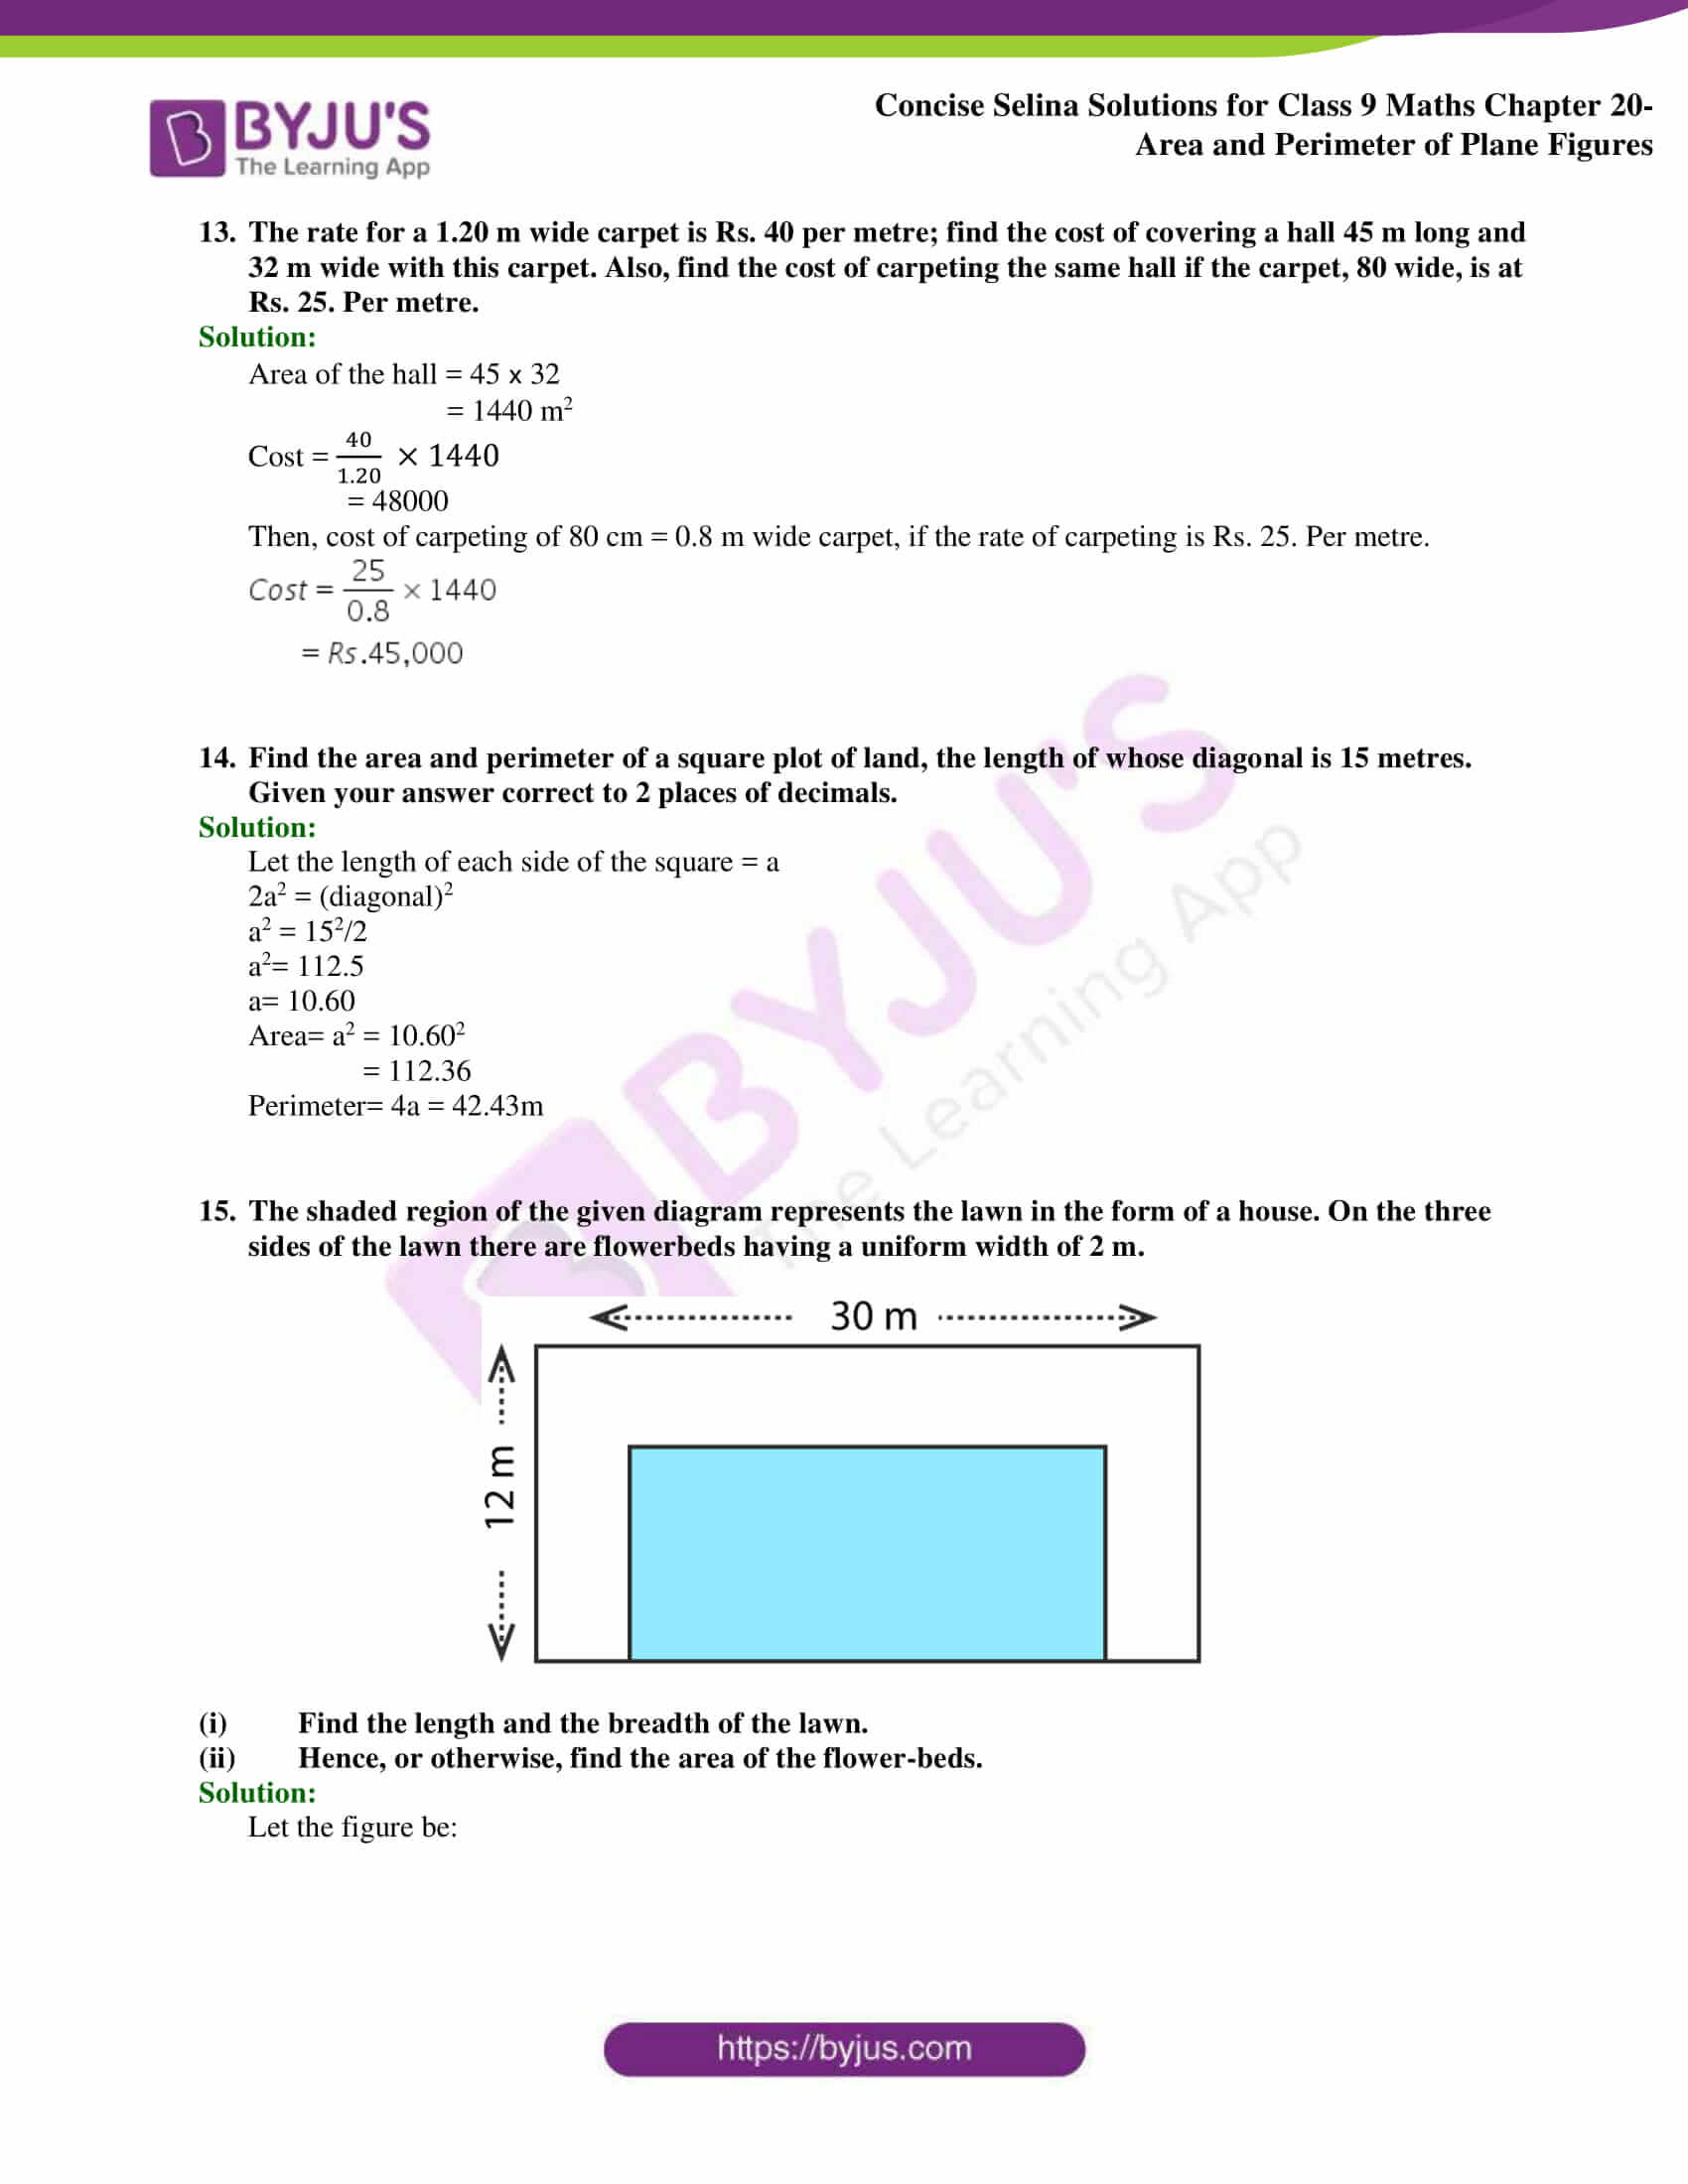 Concise Selina Solutions Class 9 Maths Chapter 20 Area and Perimeter of Plane part 17